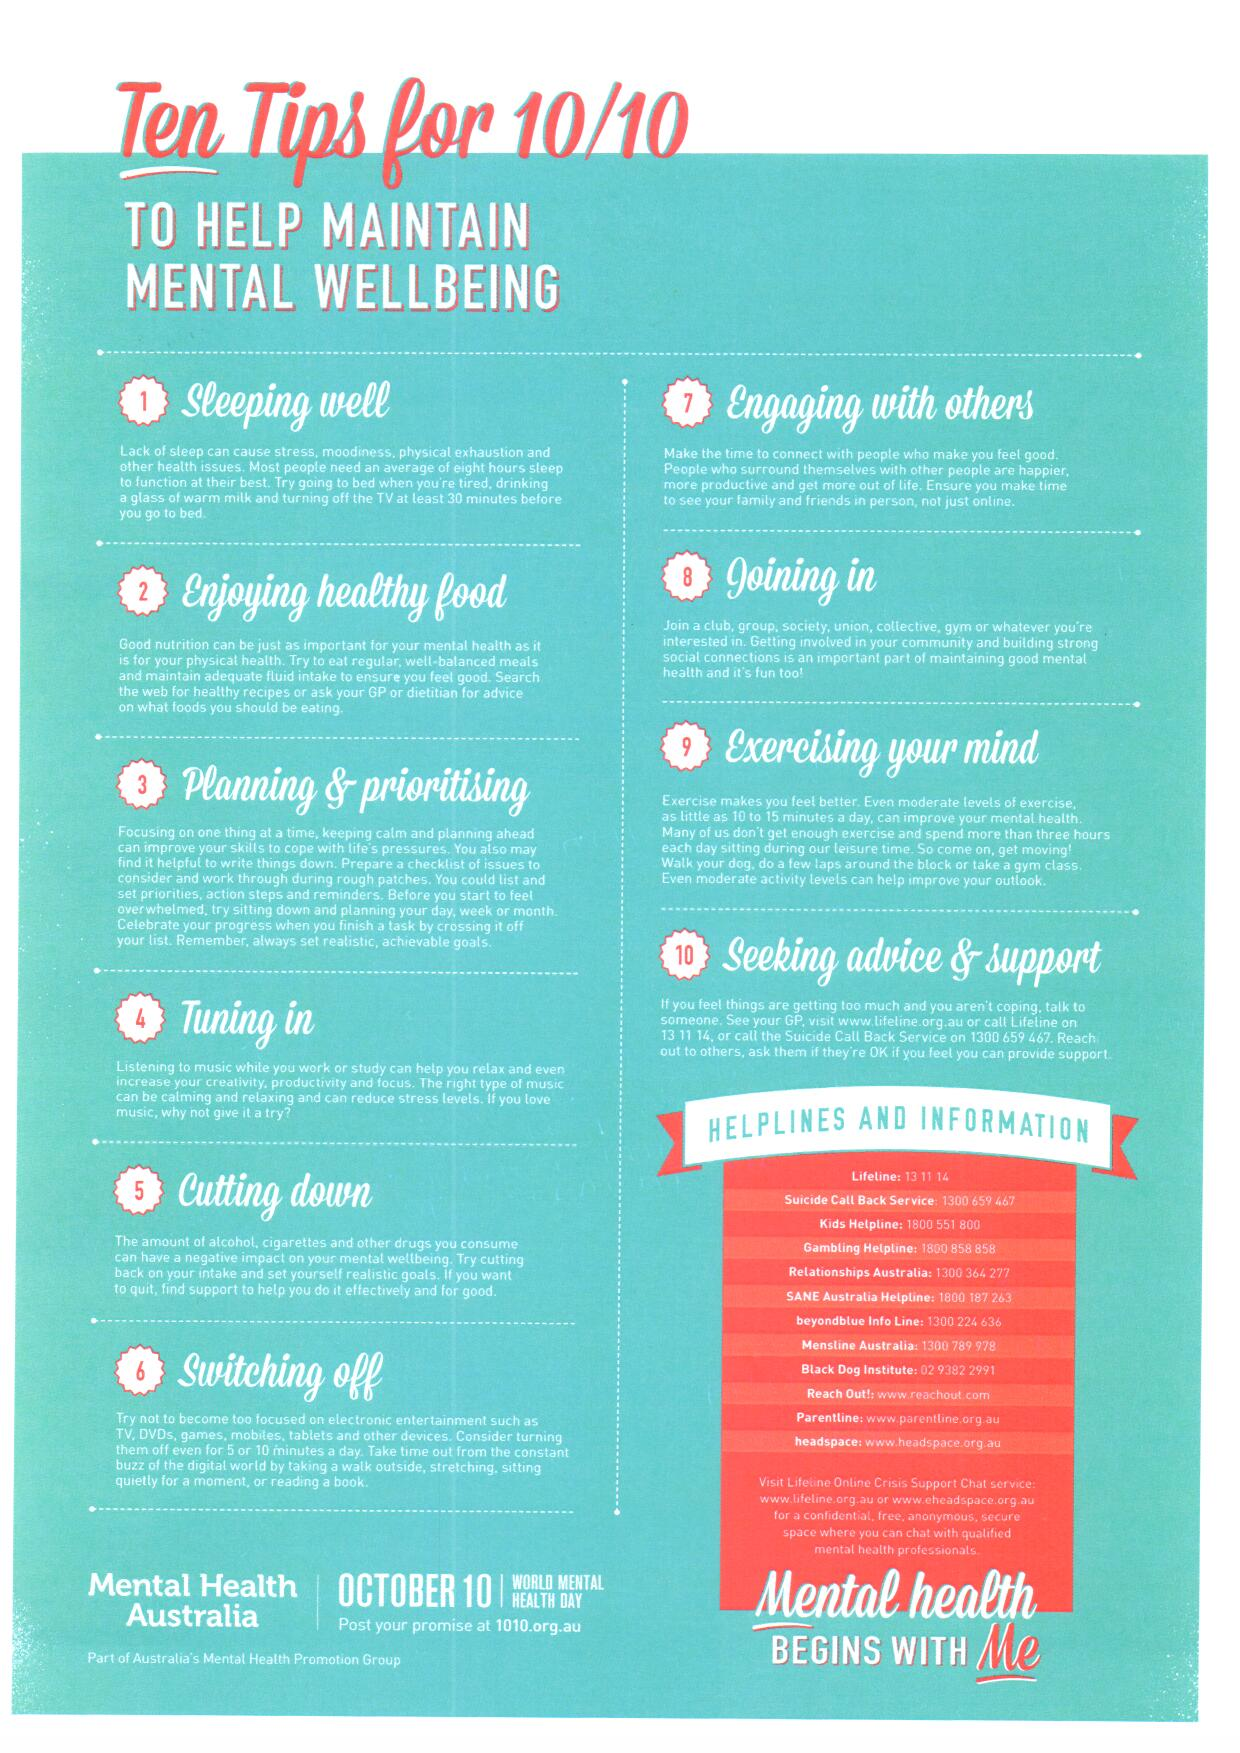 Ten tips for mental wellbeing